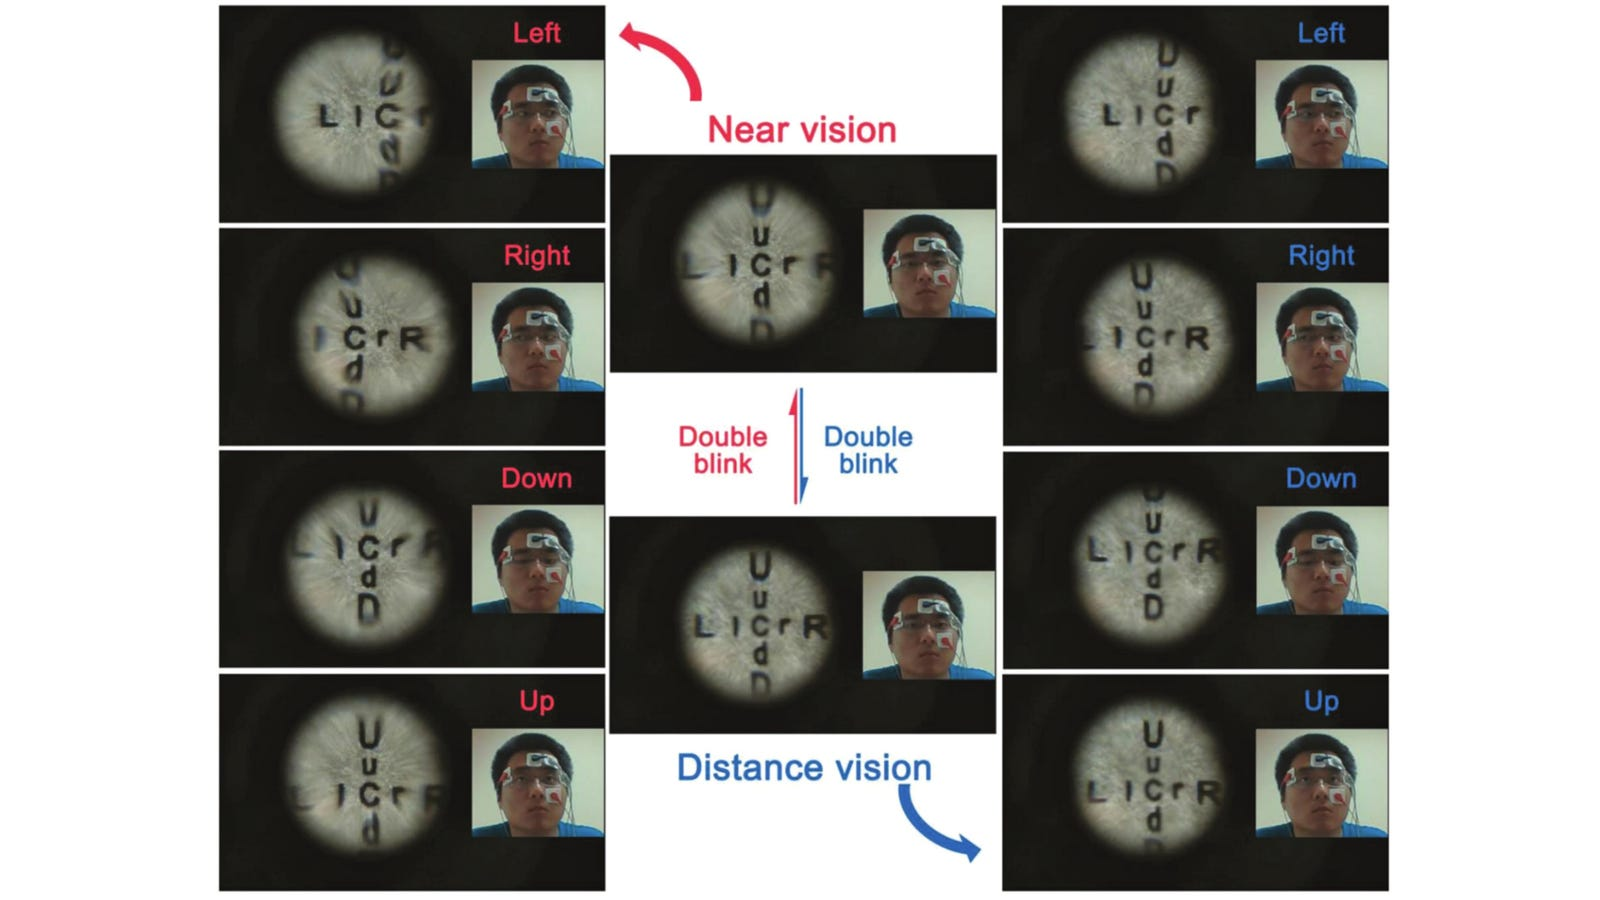 Contact Lenses That Can Change Focus and Zoom When You Blink